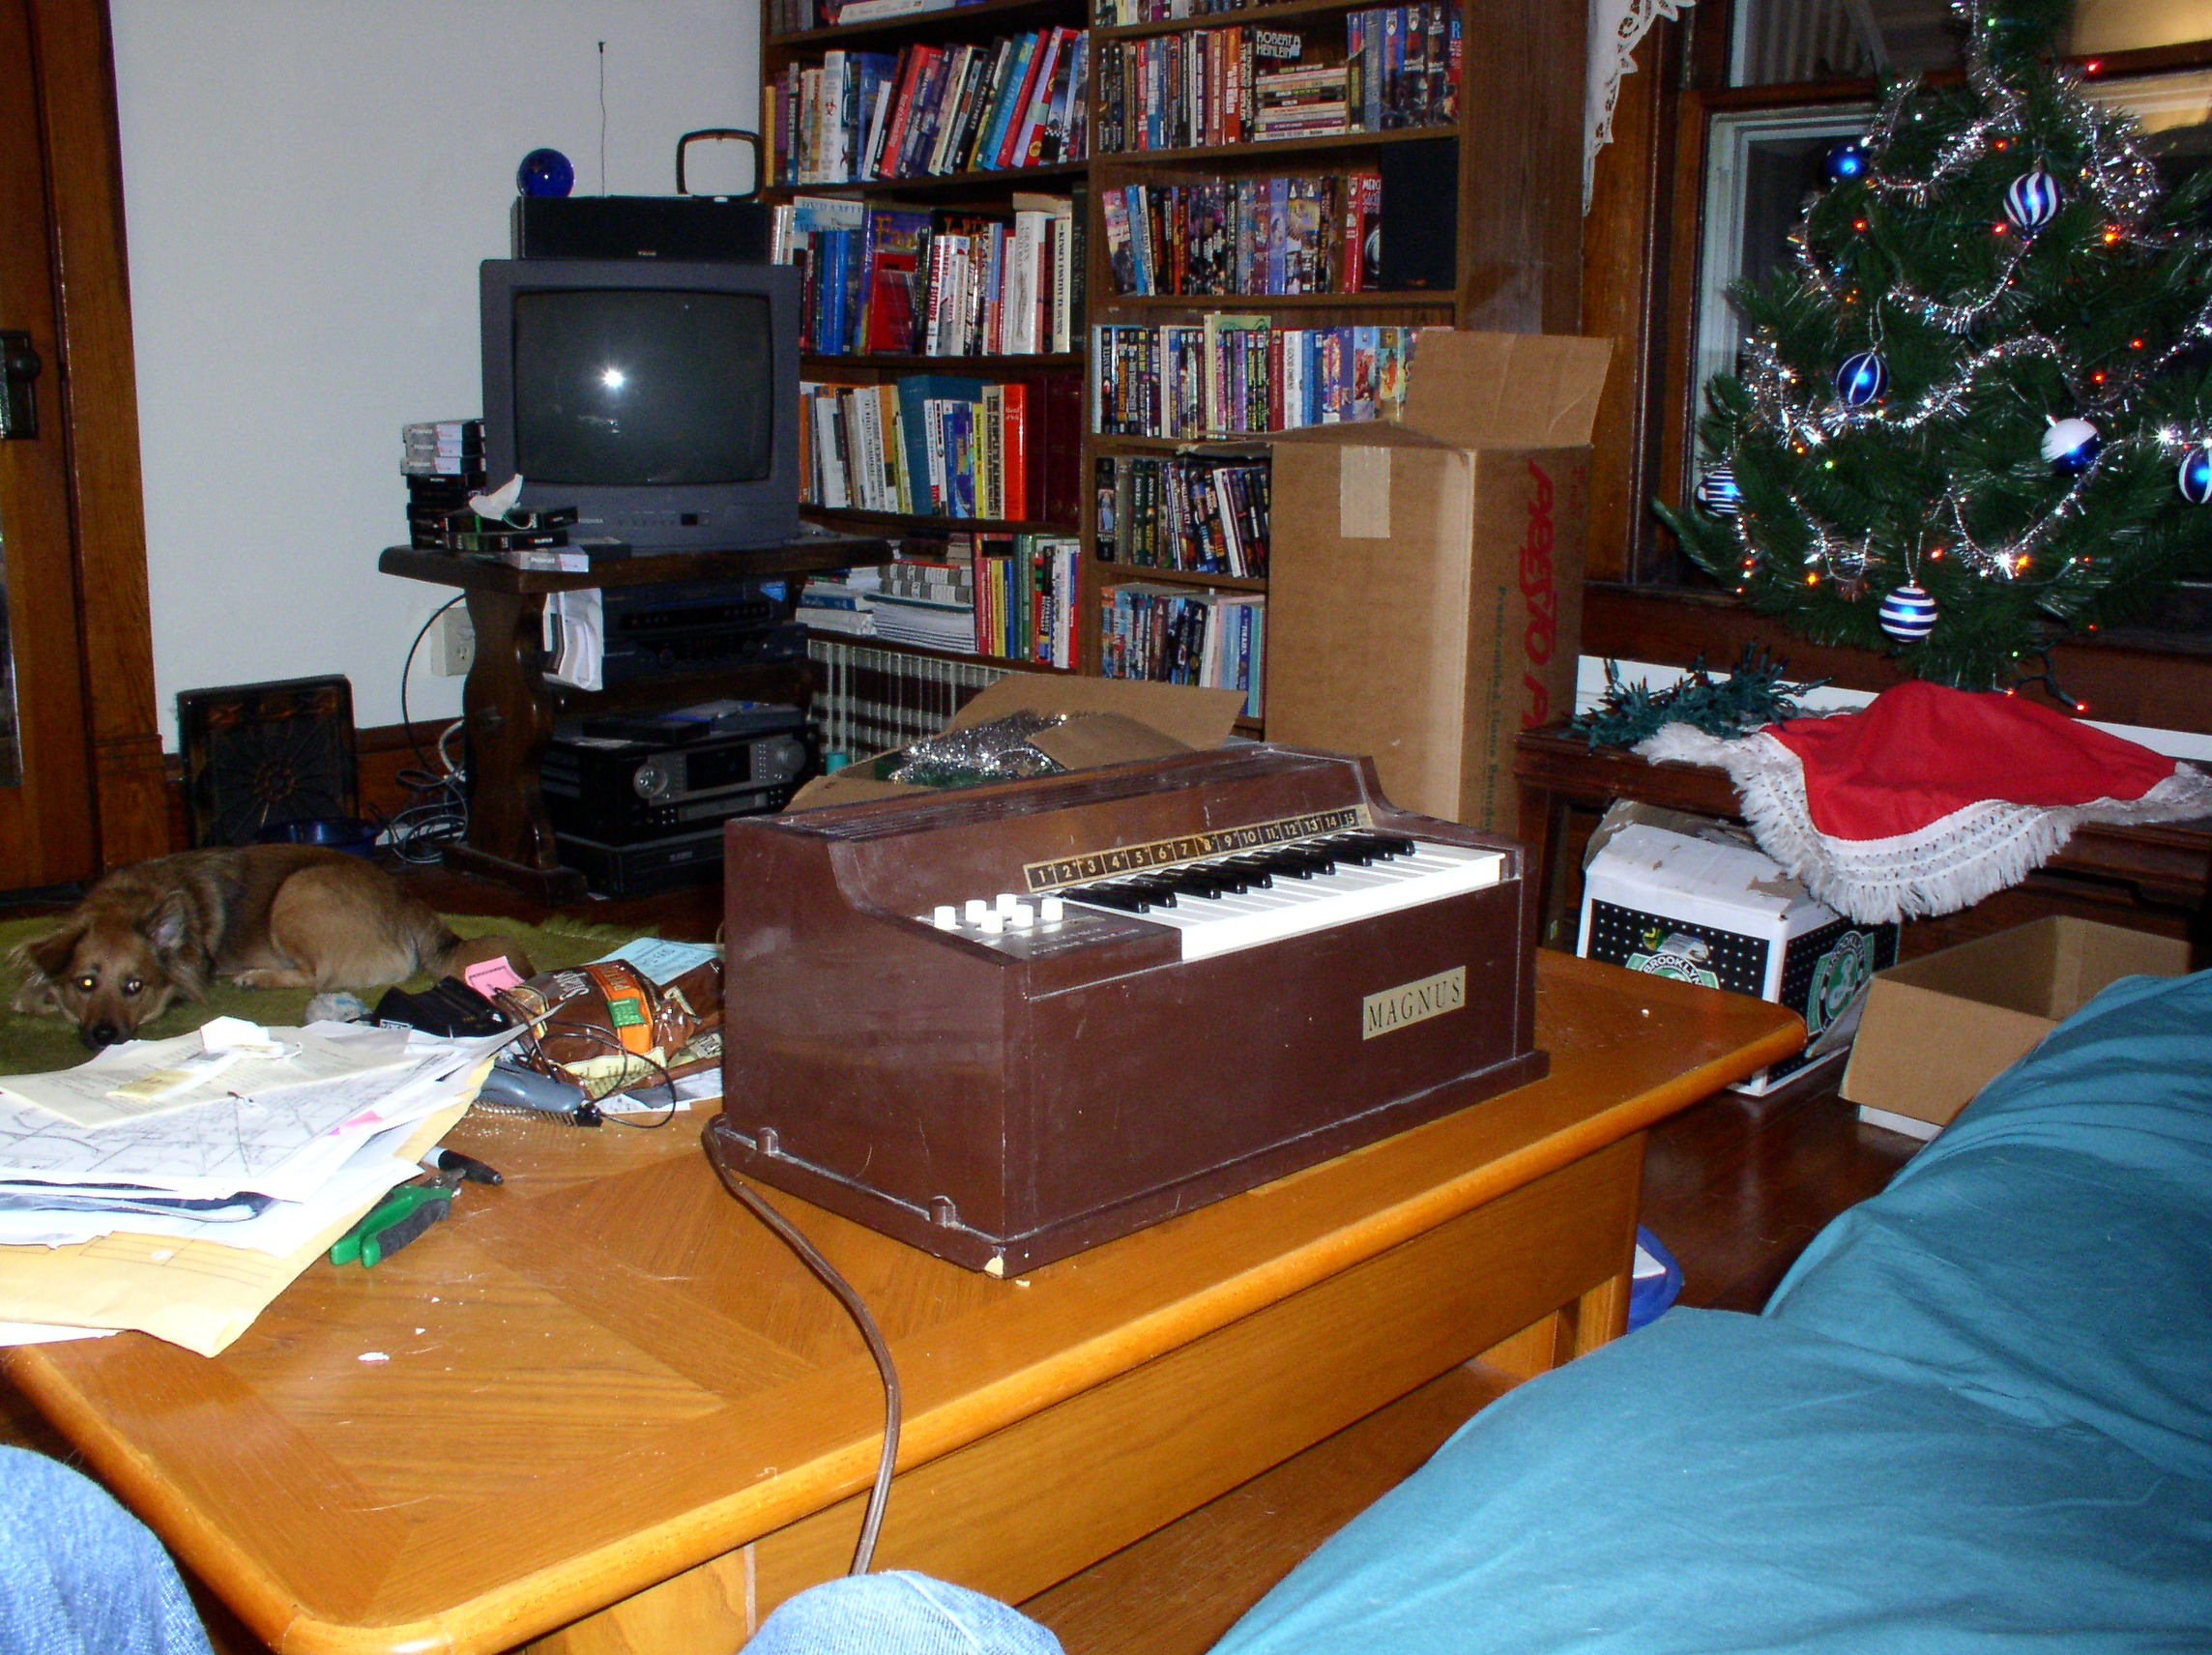 [my old brown organ]